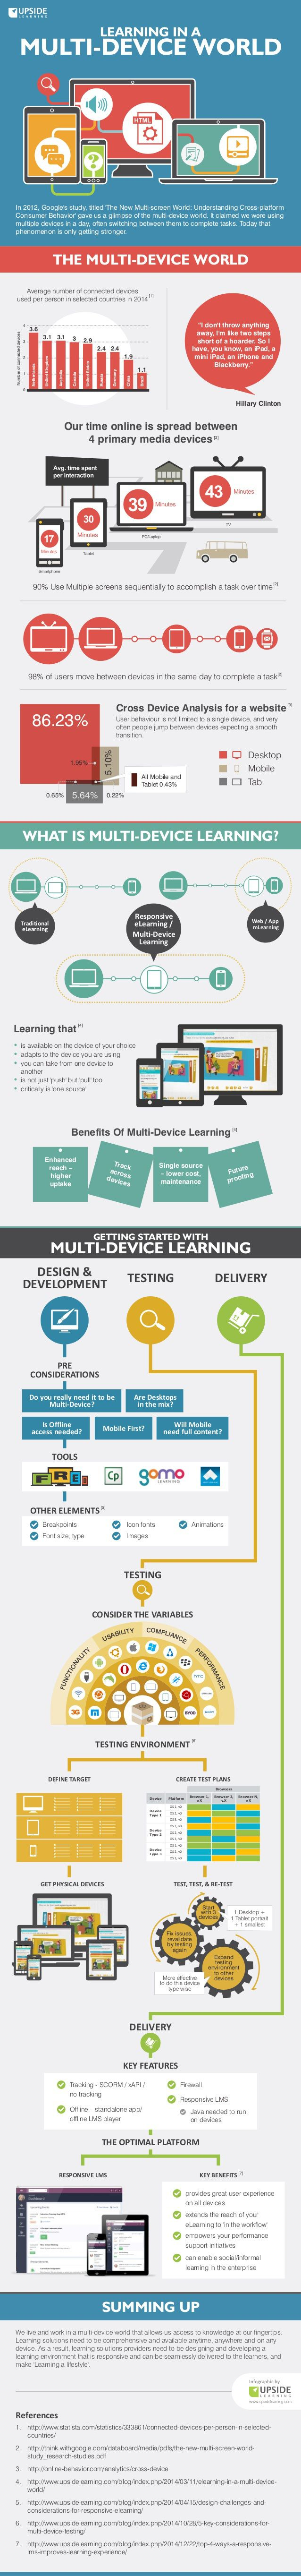 Learning in a multidevice world #INFOGRAPHIC #EDUCATION